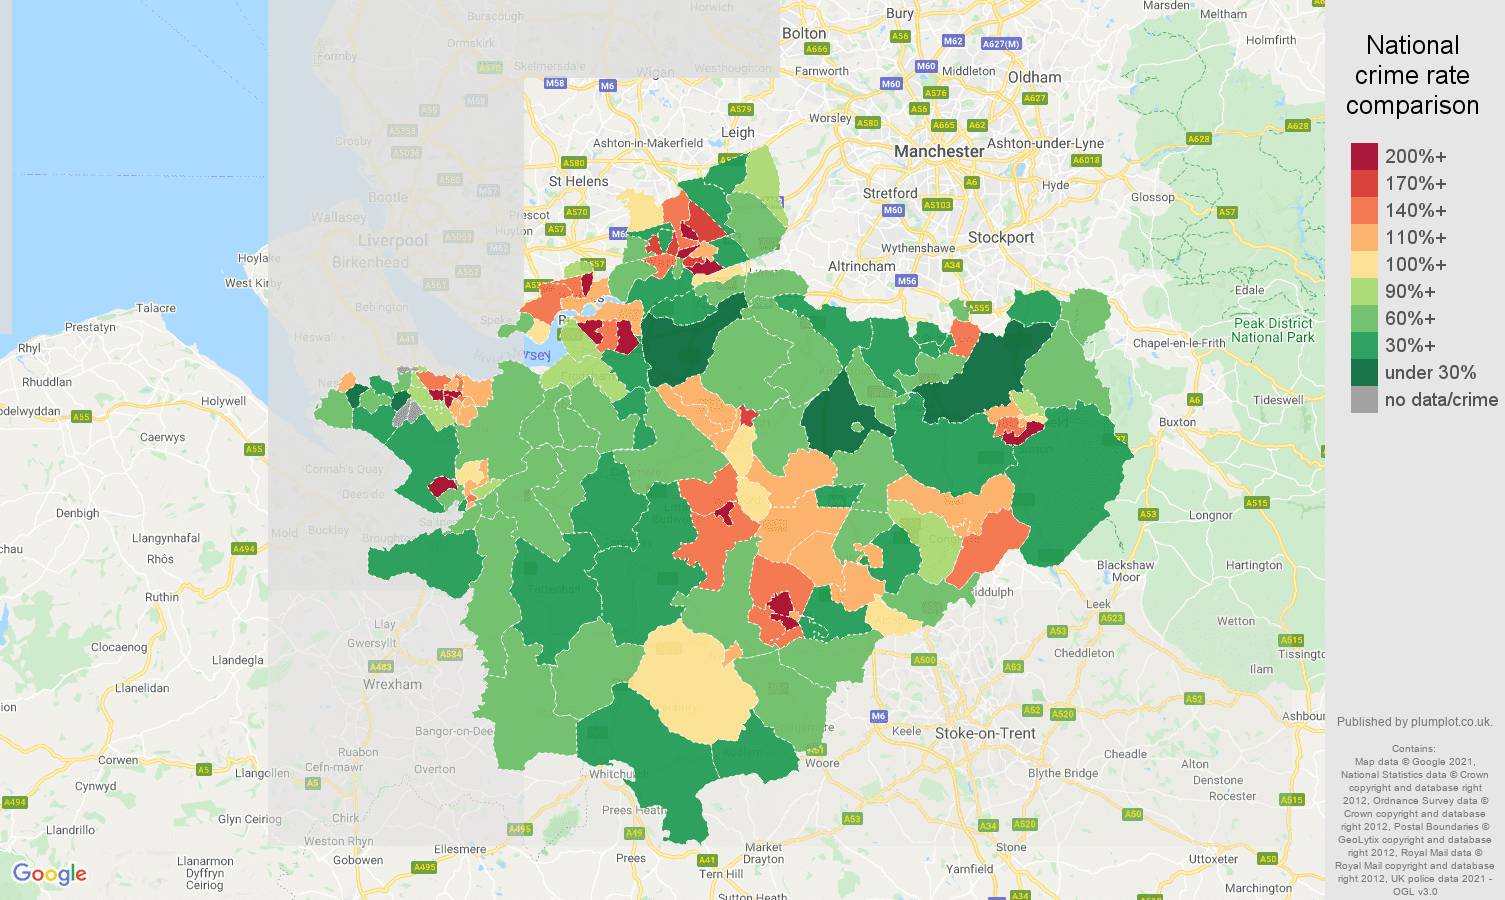 Cheshire violent crime rate comparison map